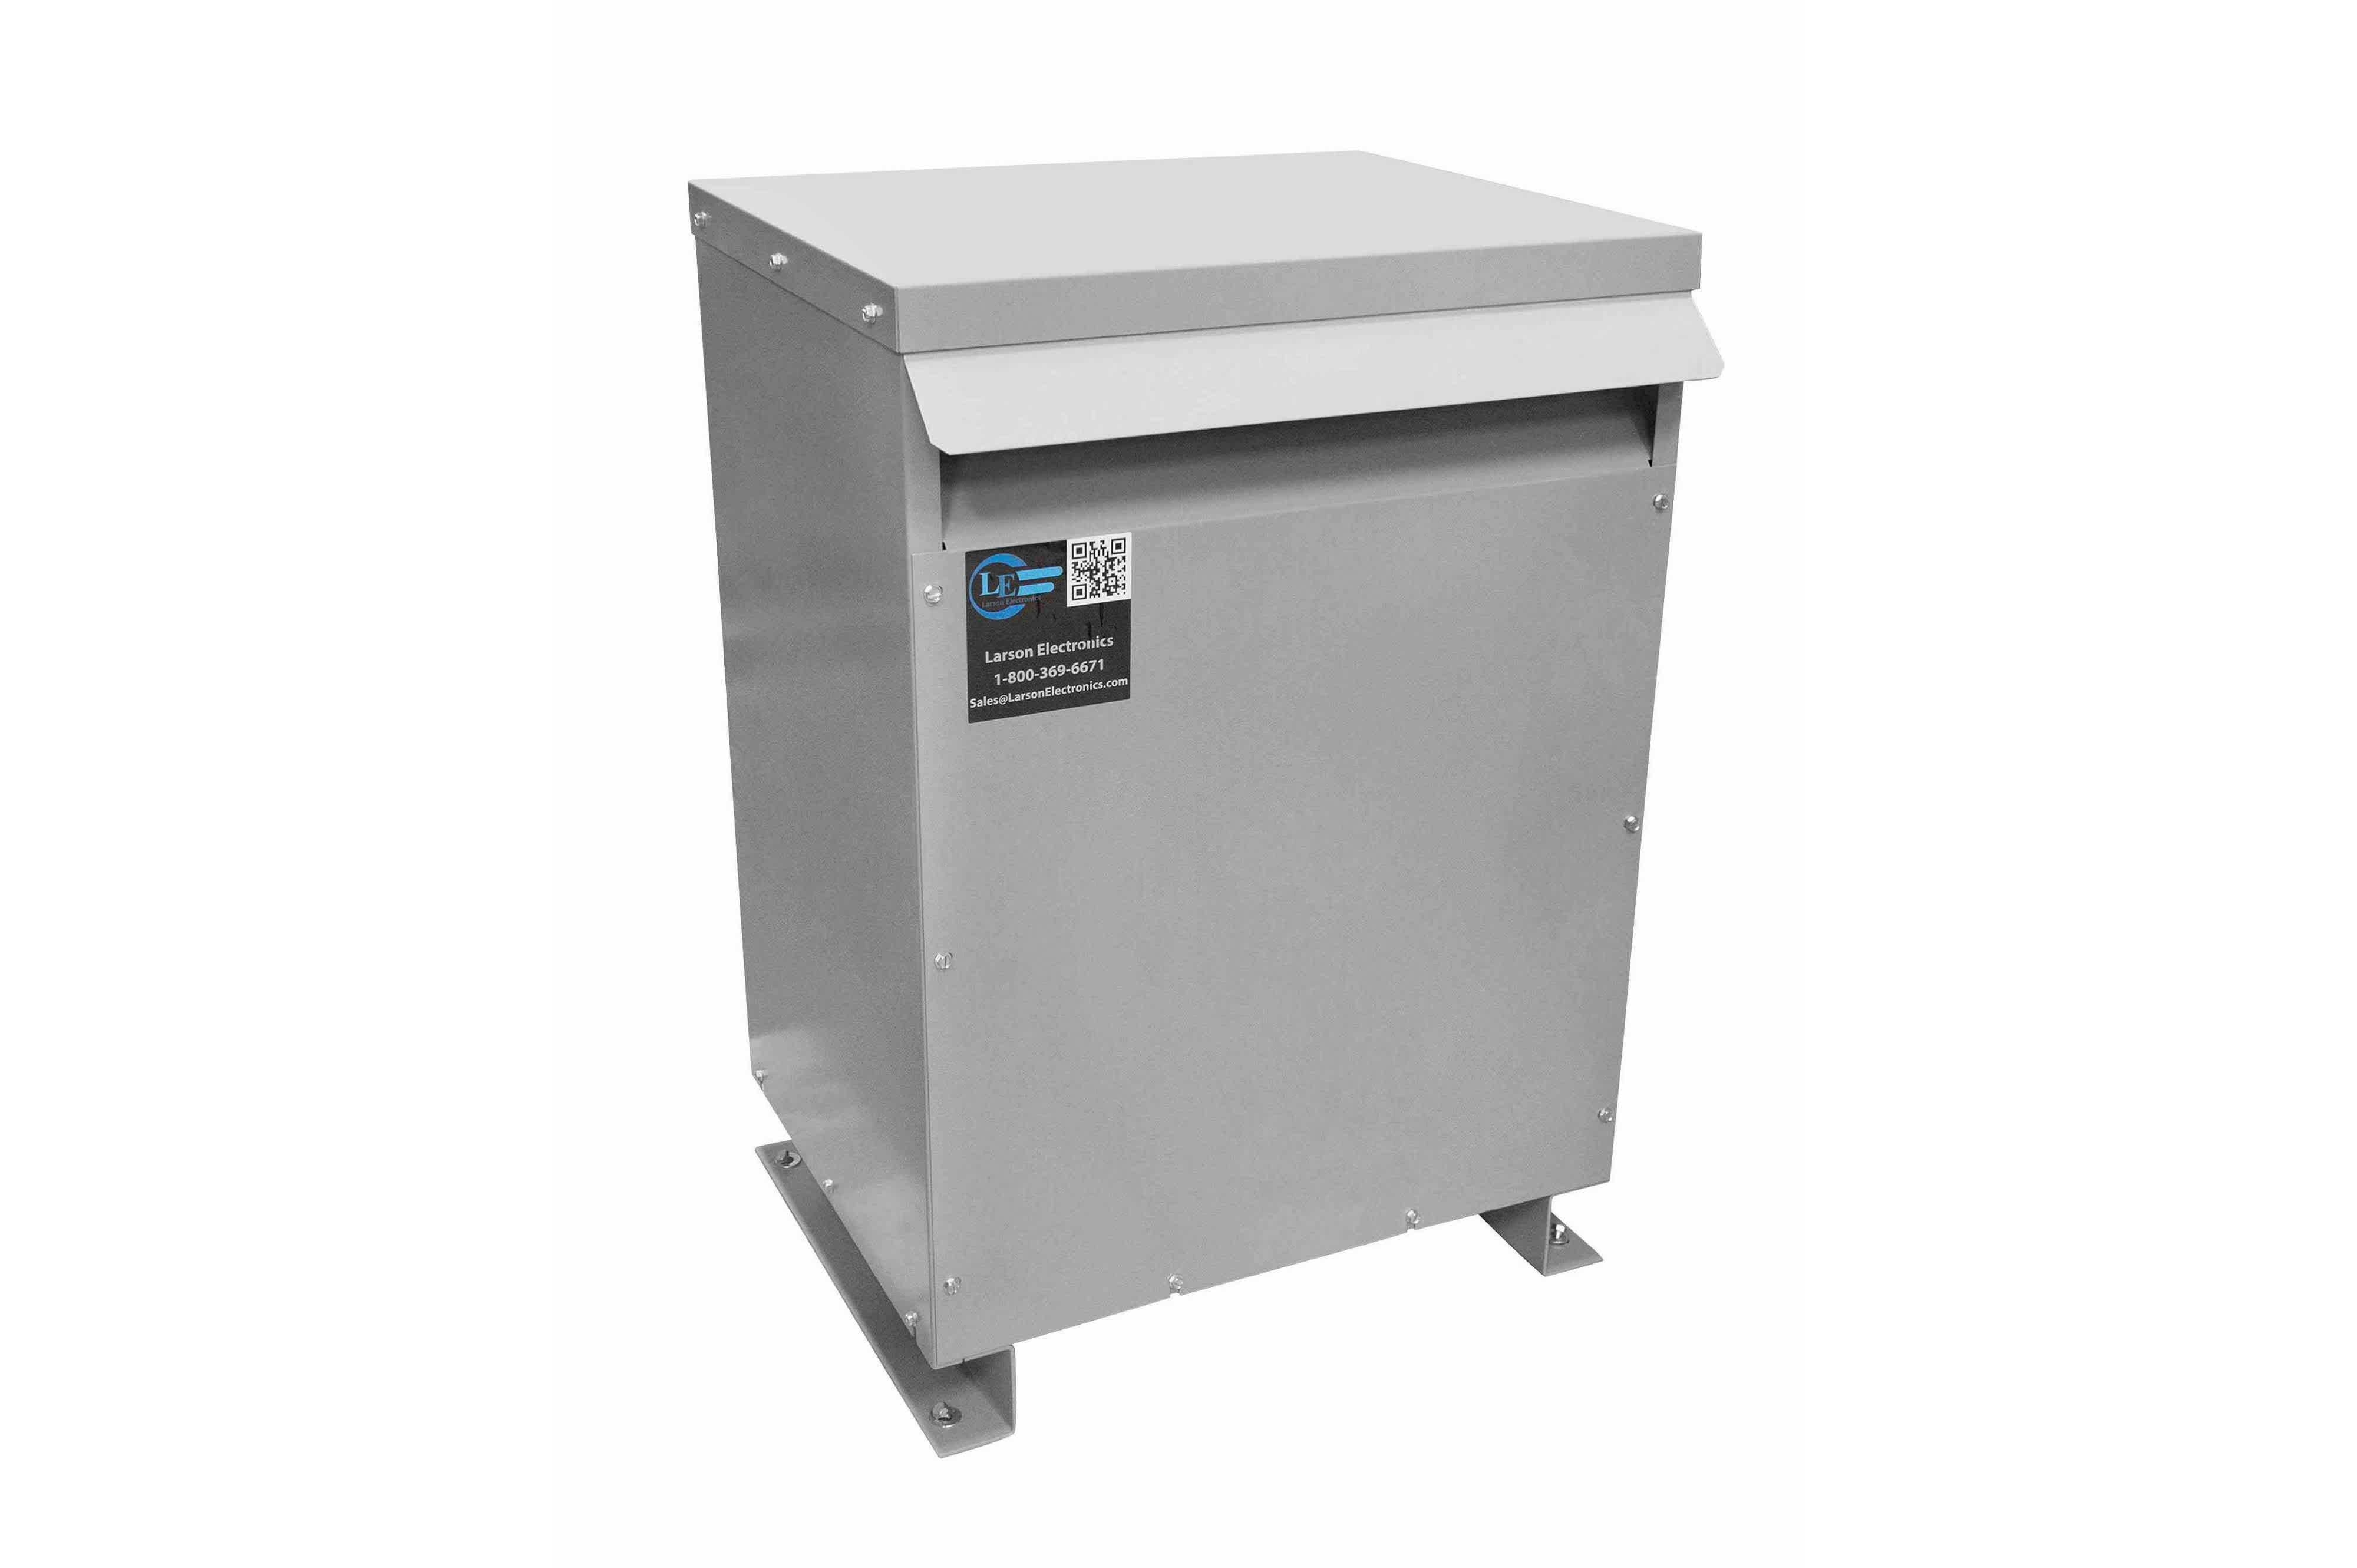 25 kVA 3PH Isolation Transformer, 460V Delta Primary, 400V Delta Secondary, N3R, Ventilated, 60 Hz